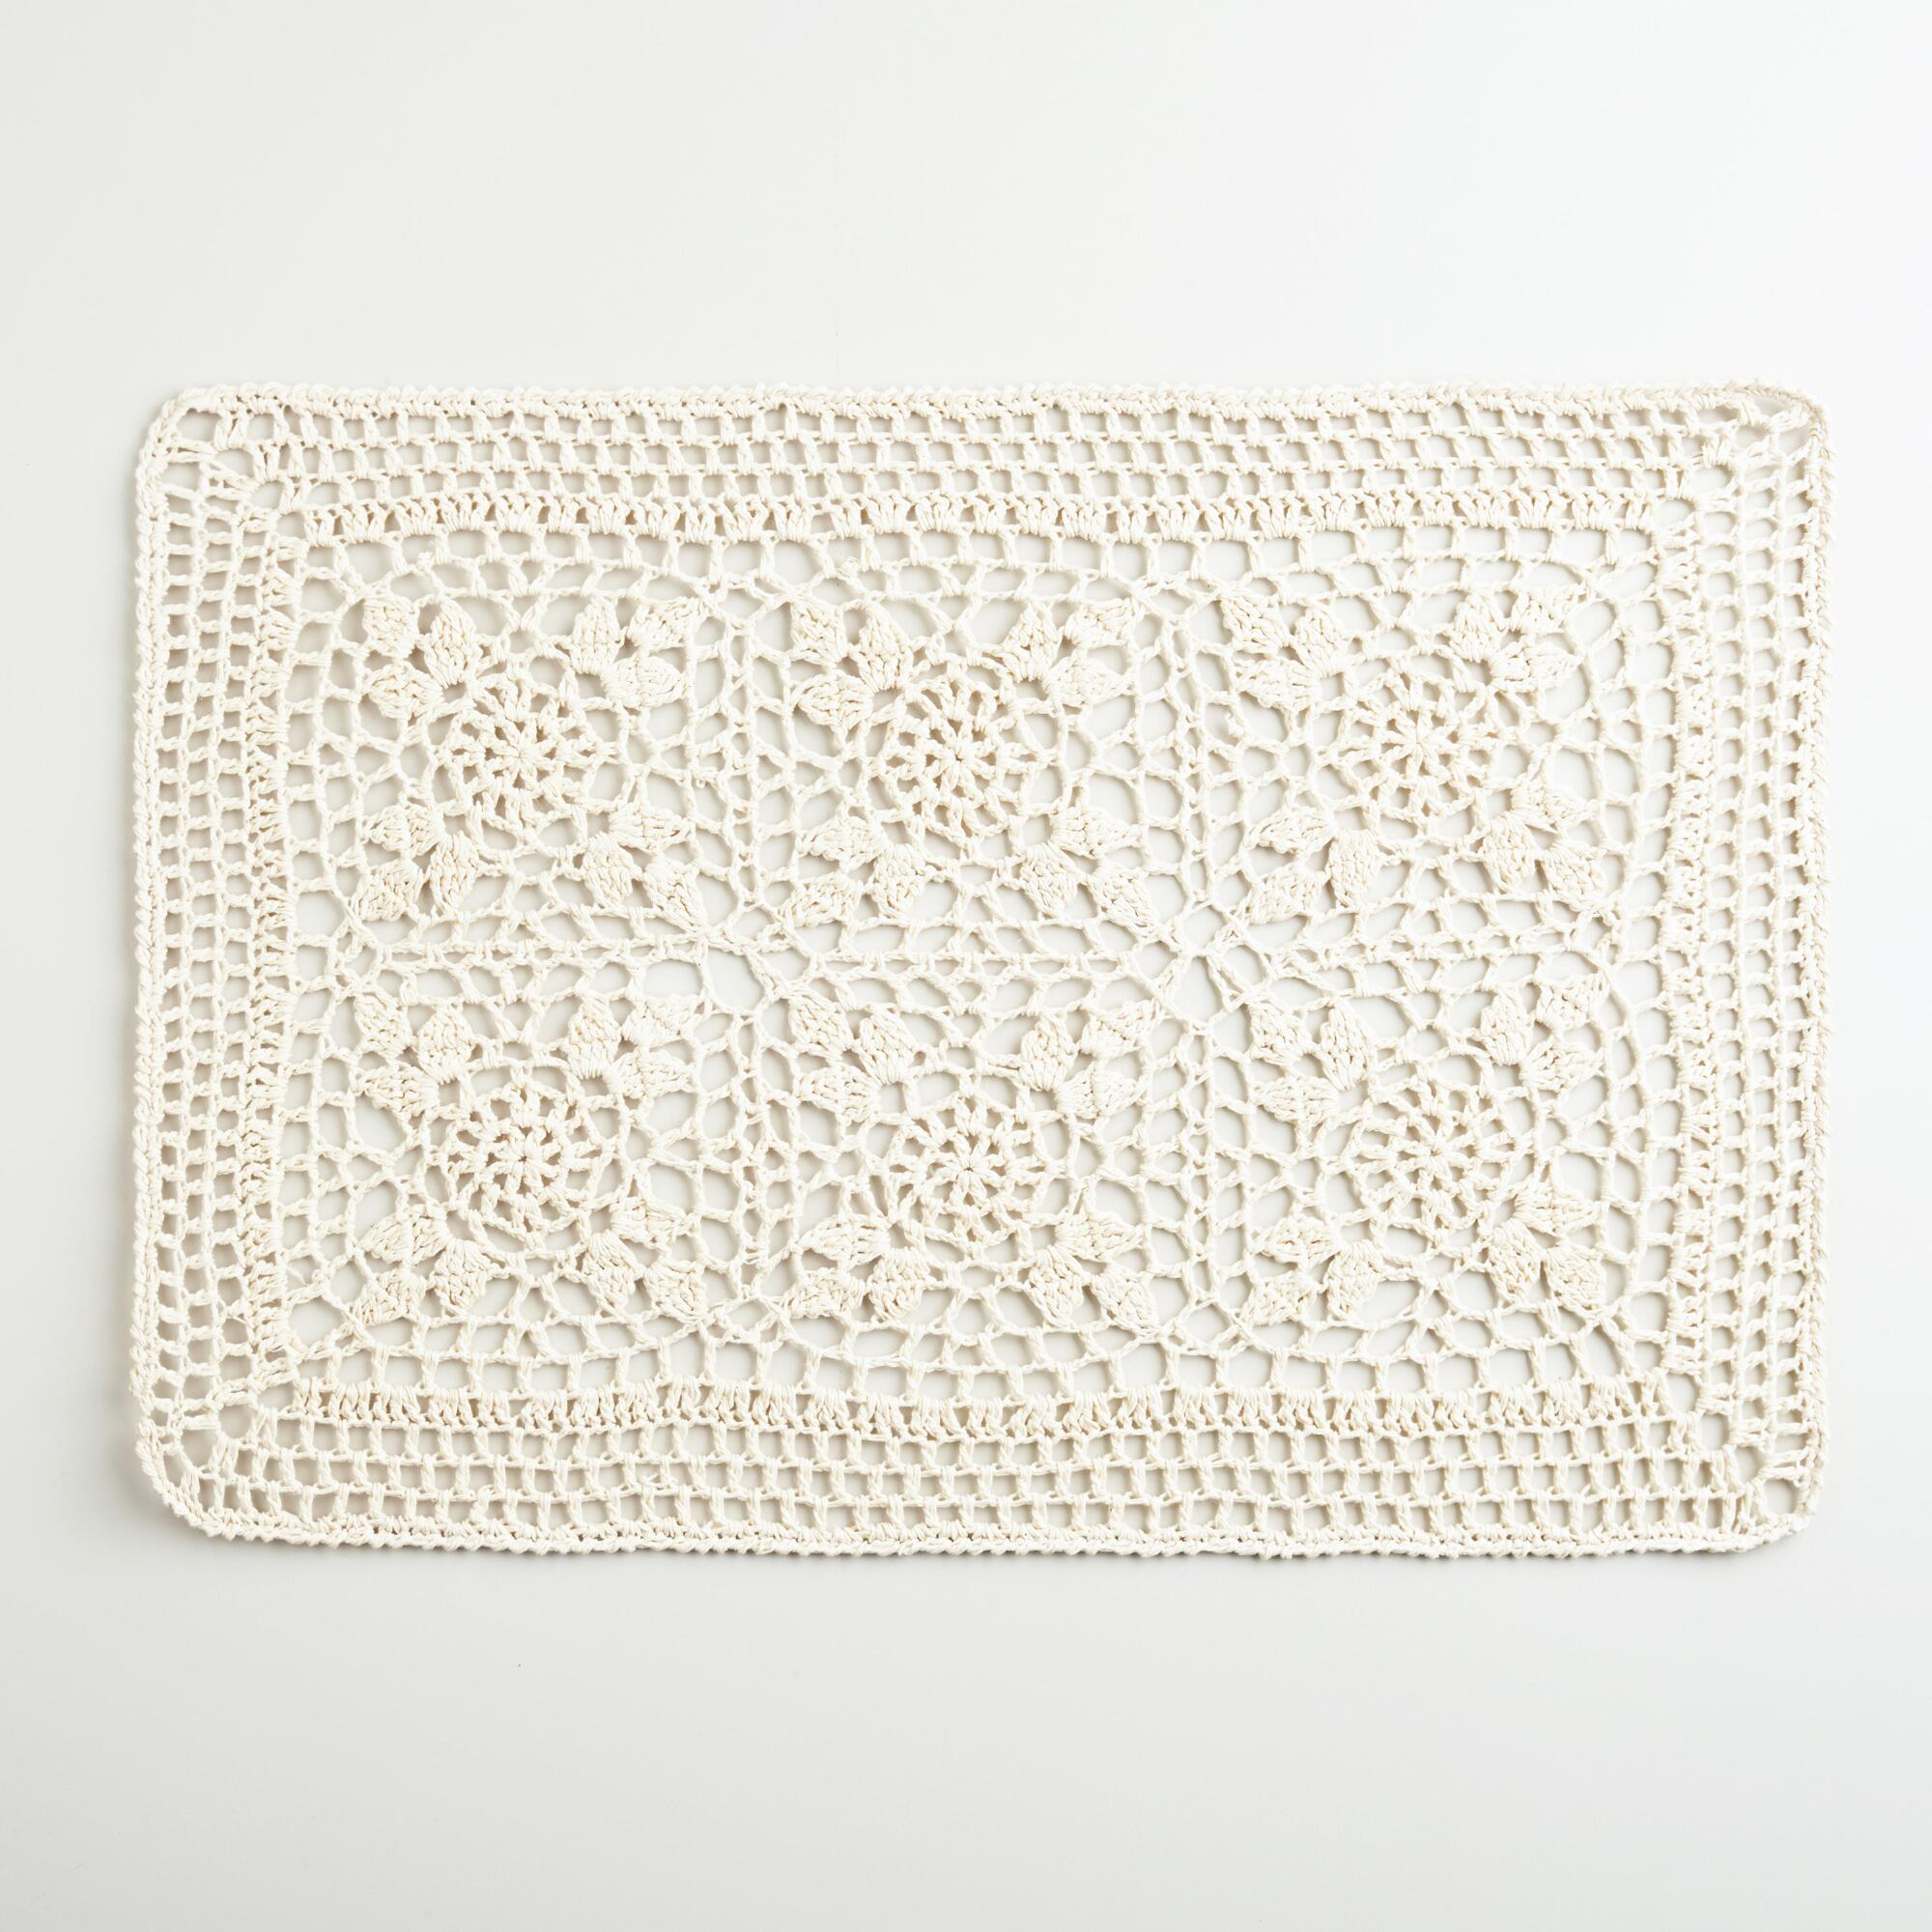 Ecru Cotton Crochet Placemats, Set of 4 World Market